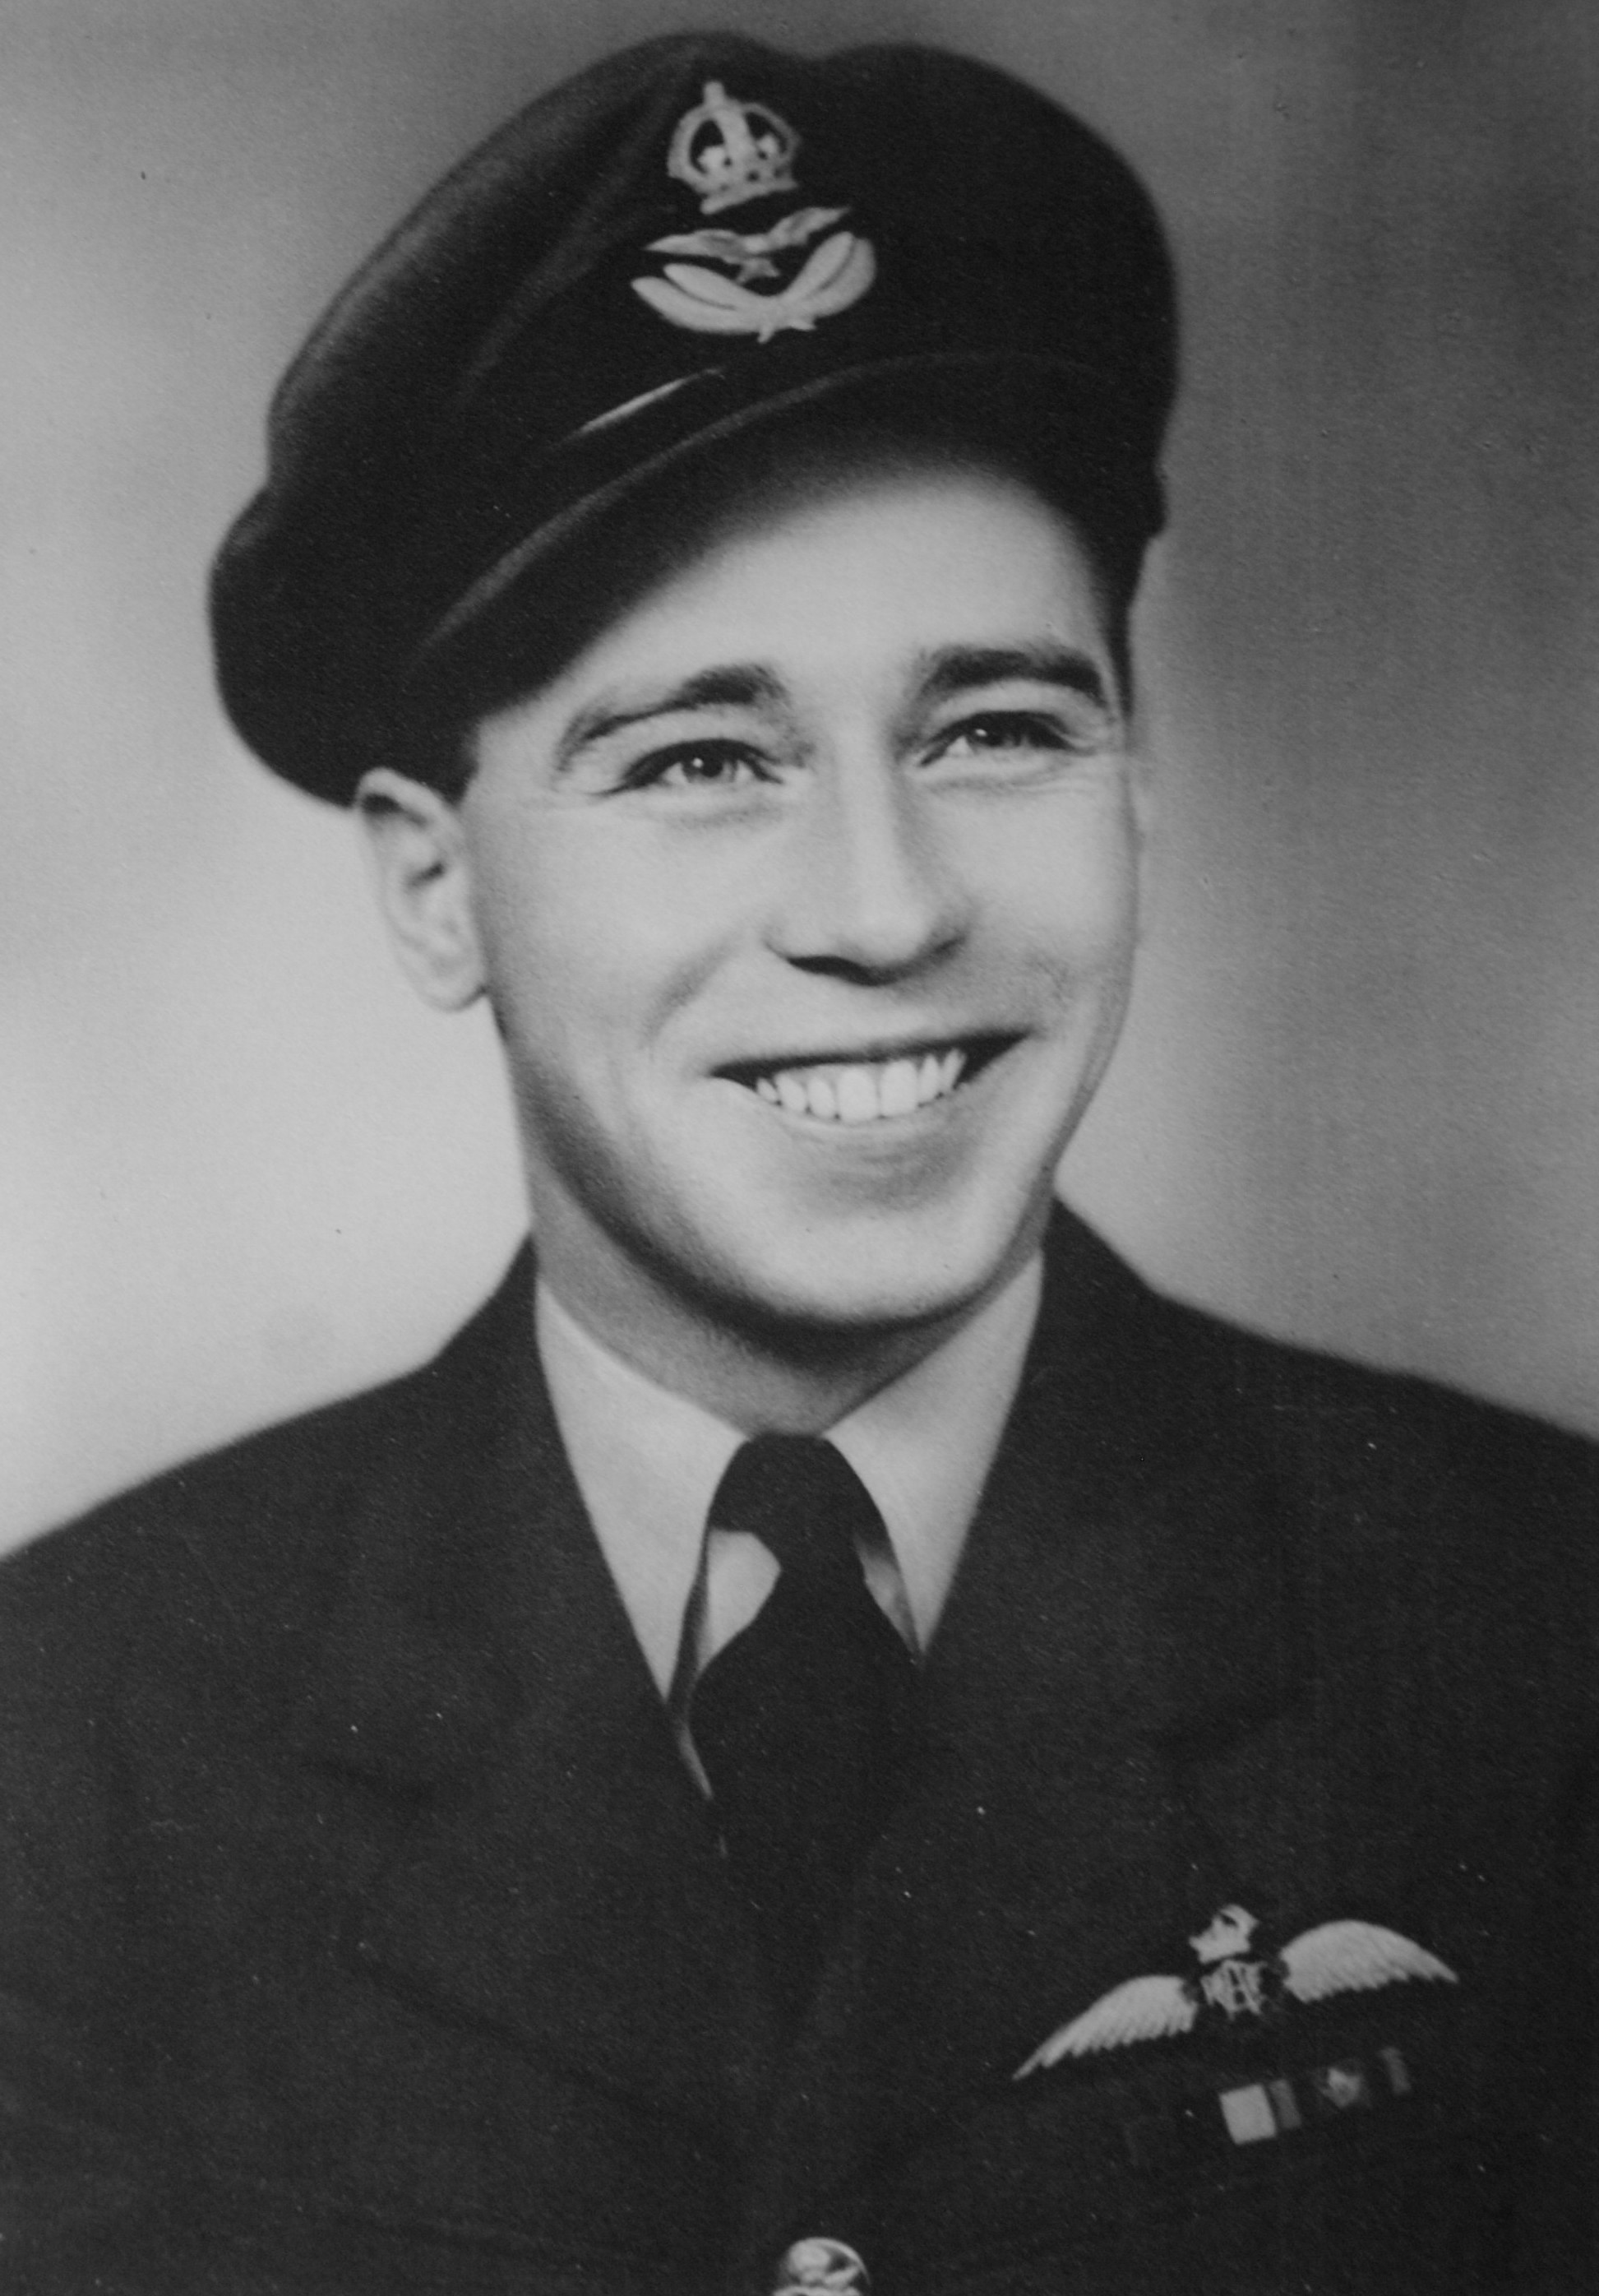 Flight Lieutenant John Colton, age 22. PHOTO: Courtesy Flight Lieutenant (retired) John Colton